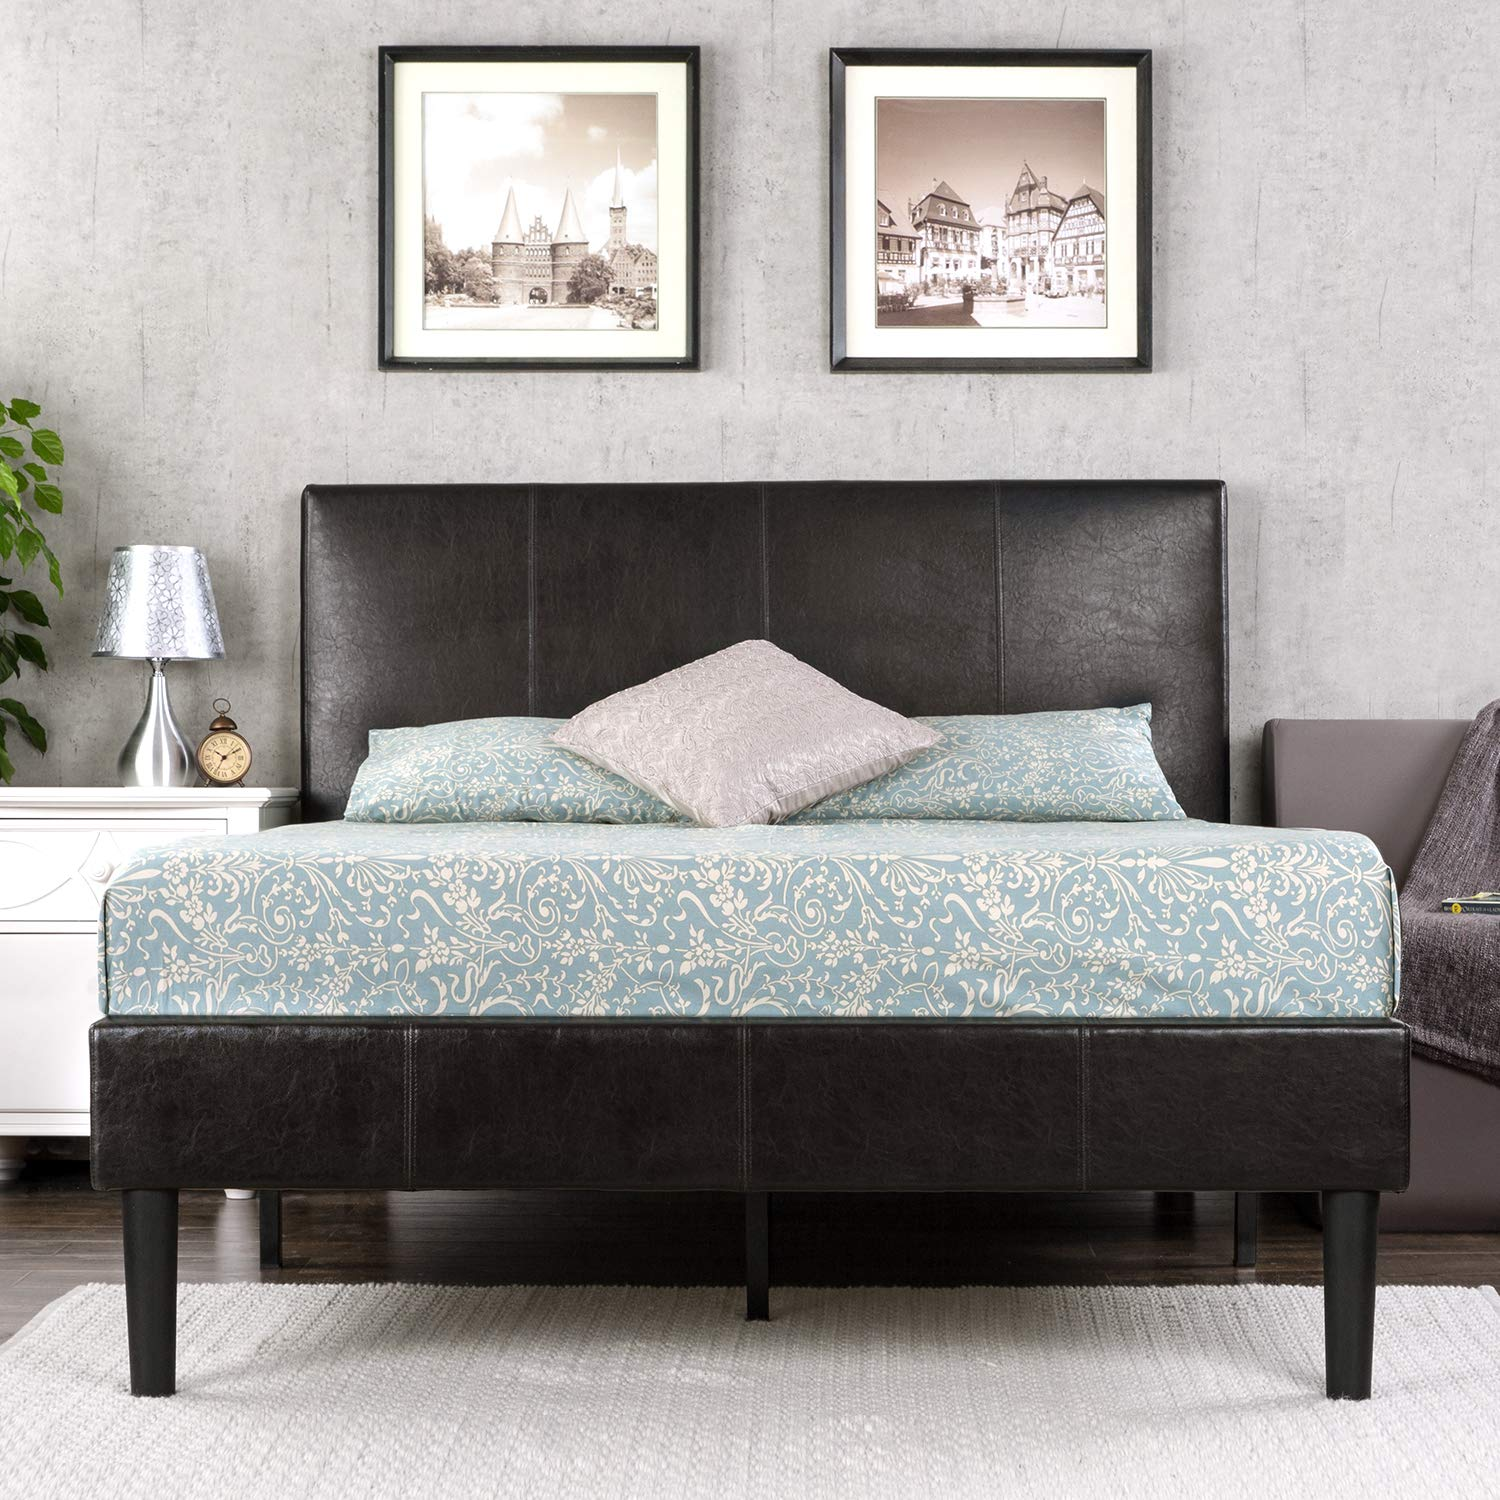 Top 10 Best Beds (2020 Reviews & Buying Guide) 4